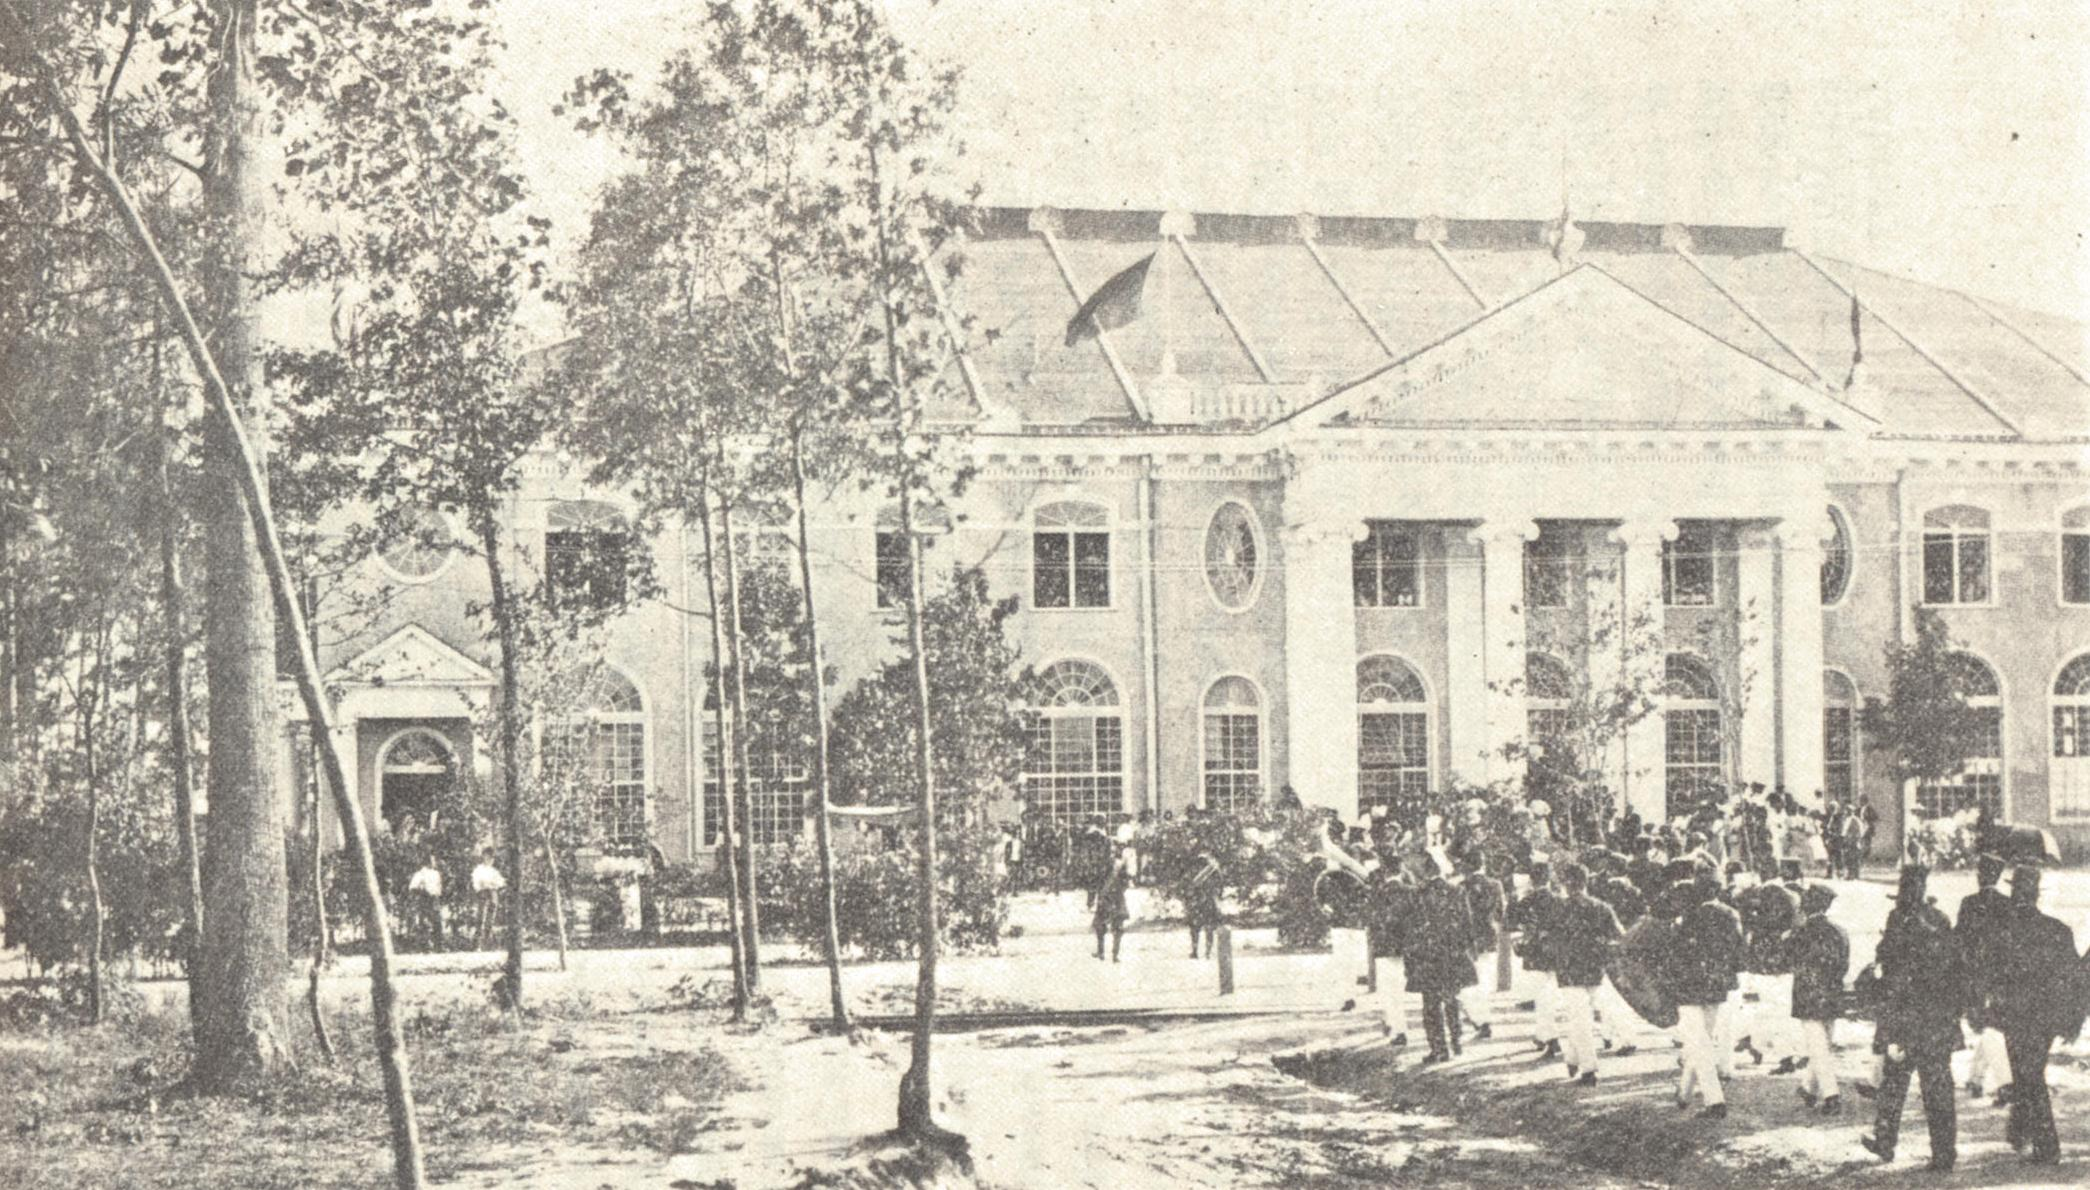 A marching band parades before the front entrance of Negro Building, Jamestown Tercentennial Exposition, 24 August 1907.